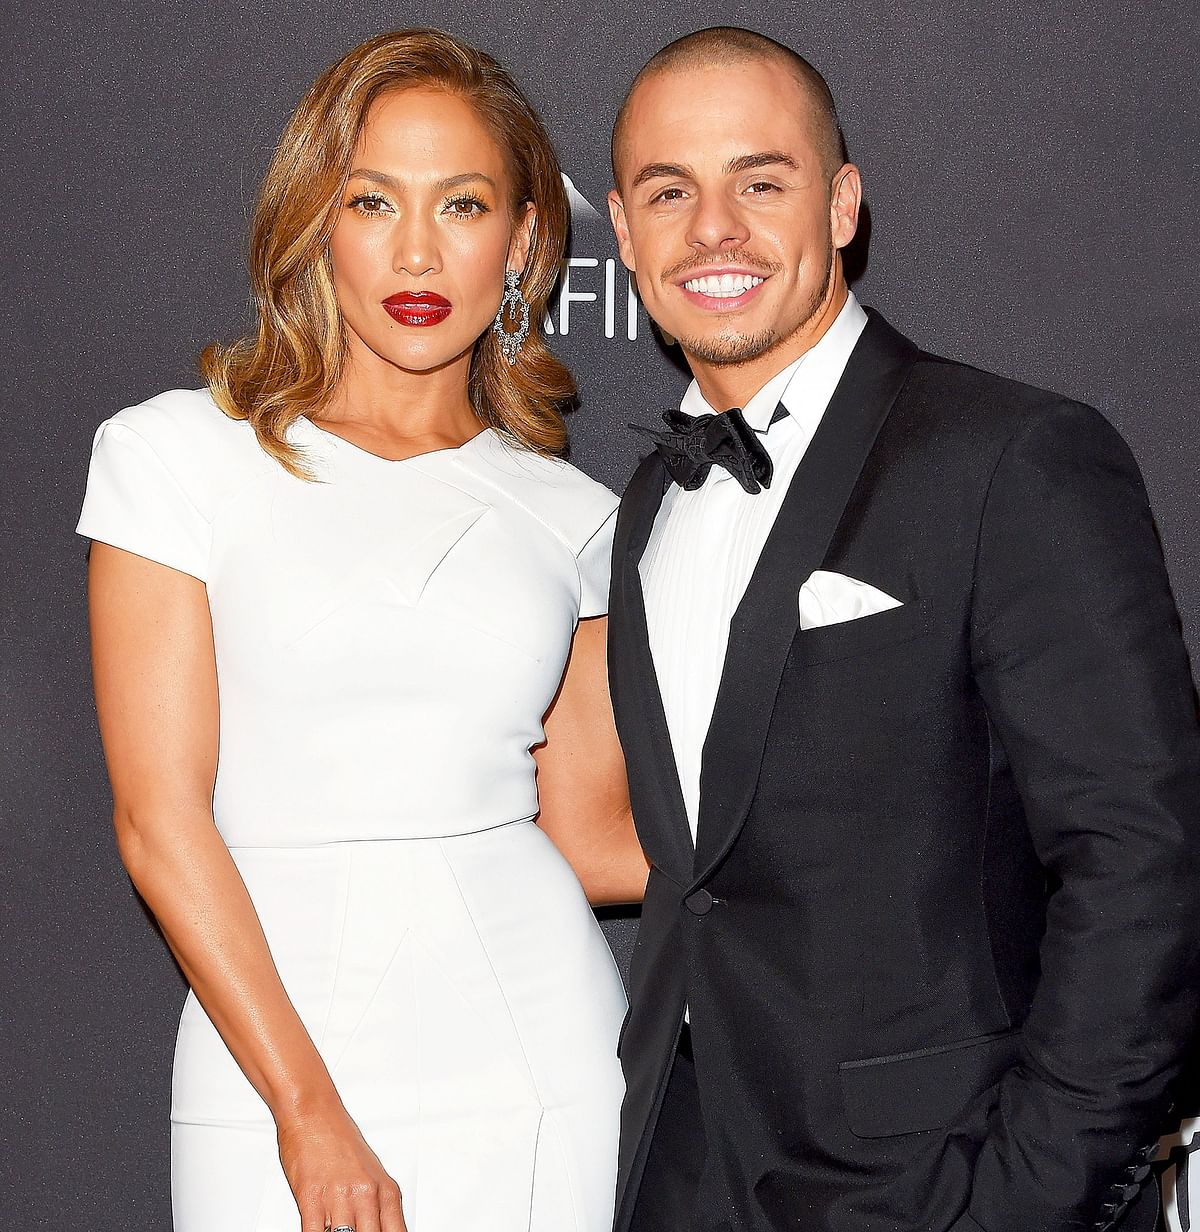 3 failed marriages, 5 engagements, 7 relationships: A look at Jennifer Lopez's love life